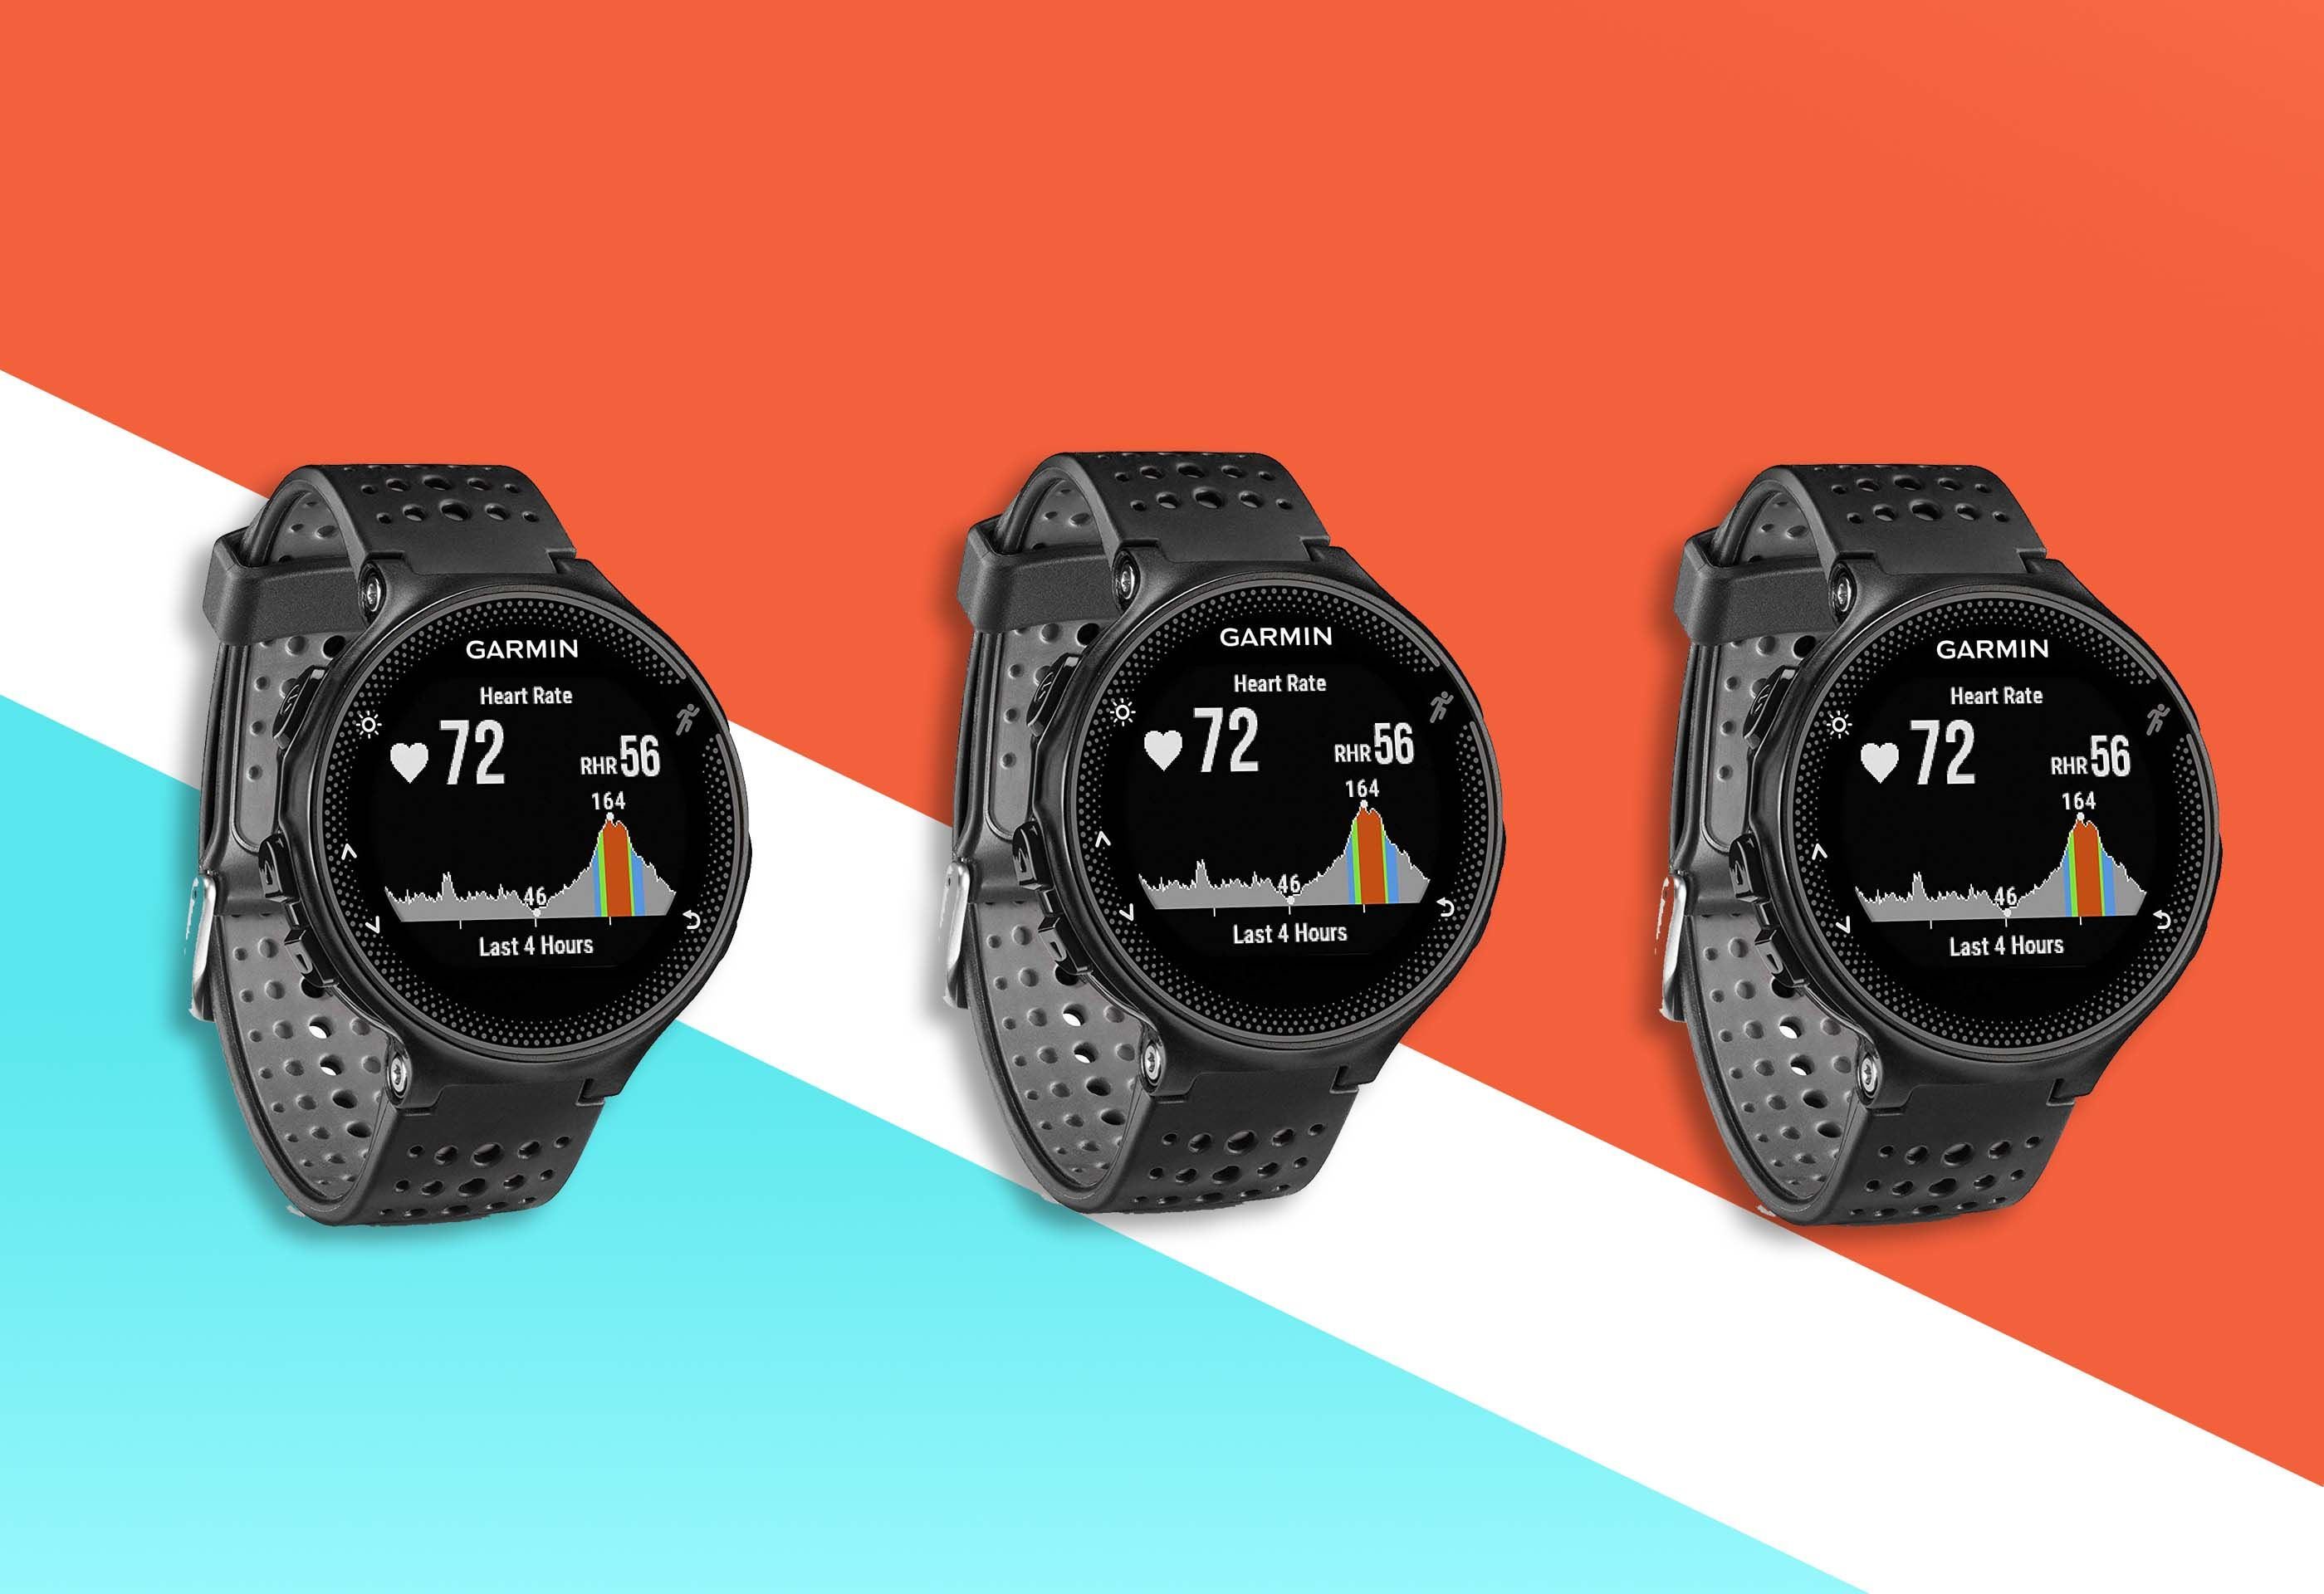 You can save £70 on this Garmin today